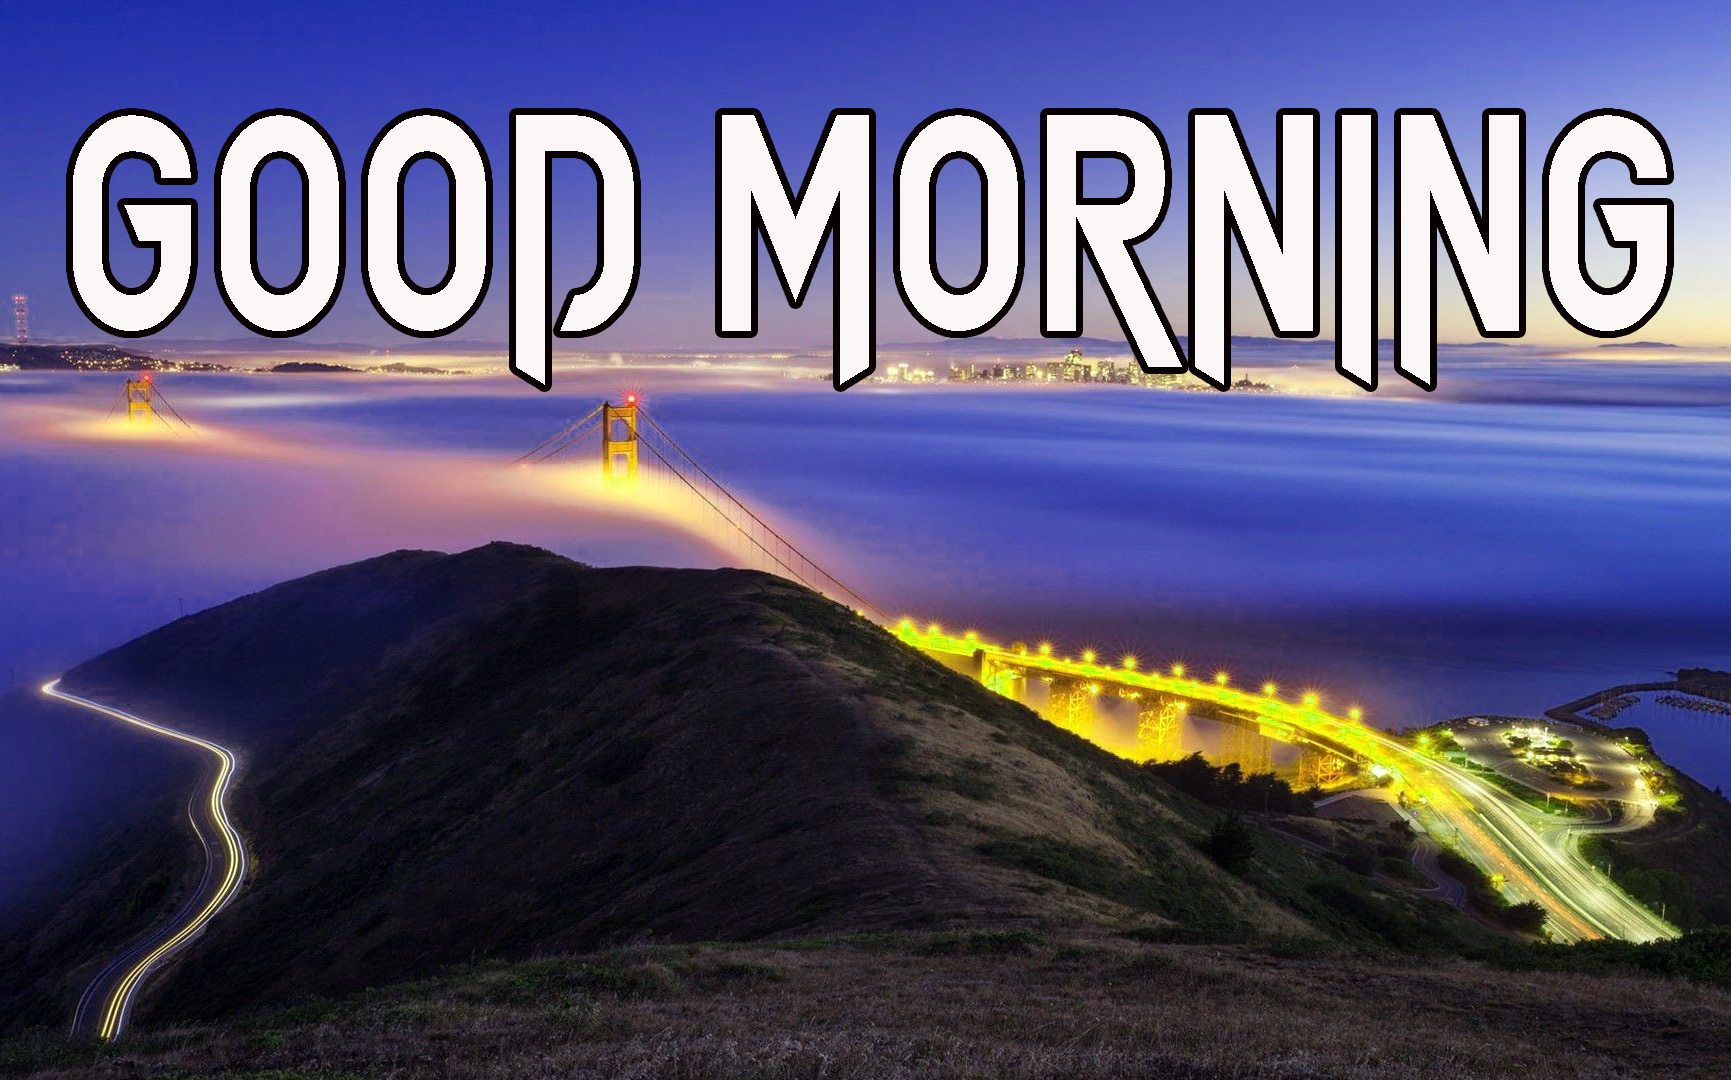 GOOD MORNING IMAGE PICTURES PHOTO HD